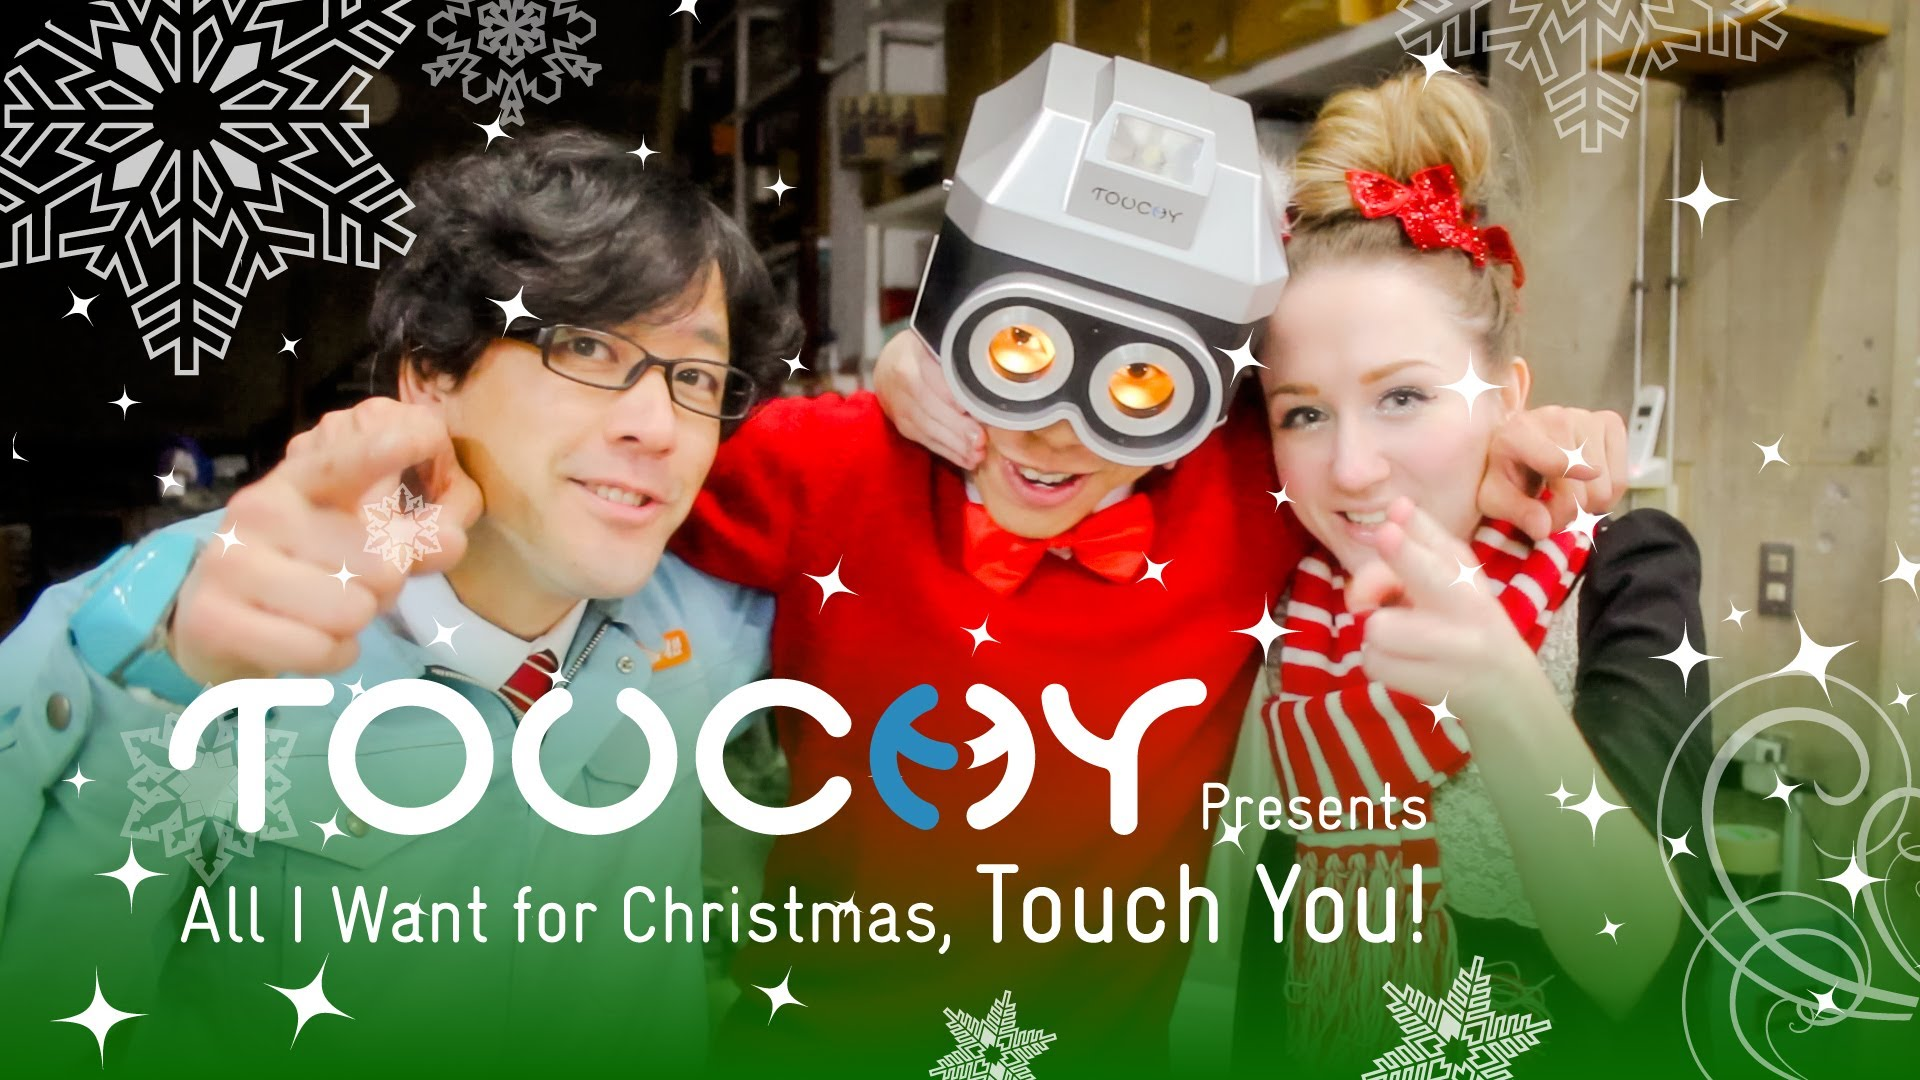 All I Want for Christmas, Touch You! - YouTube